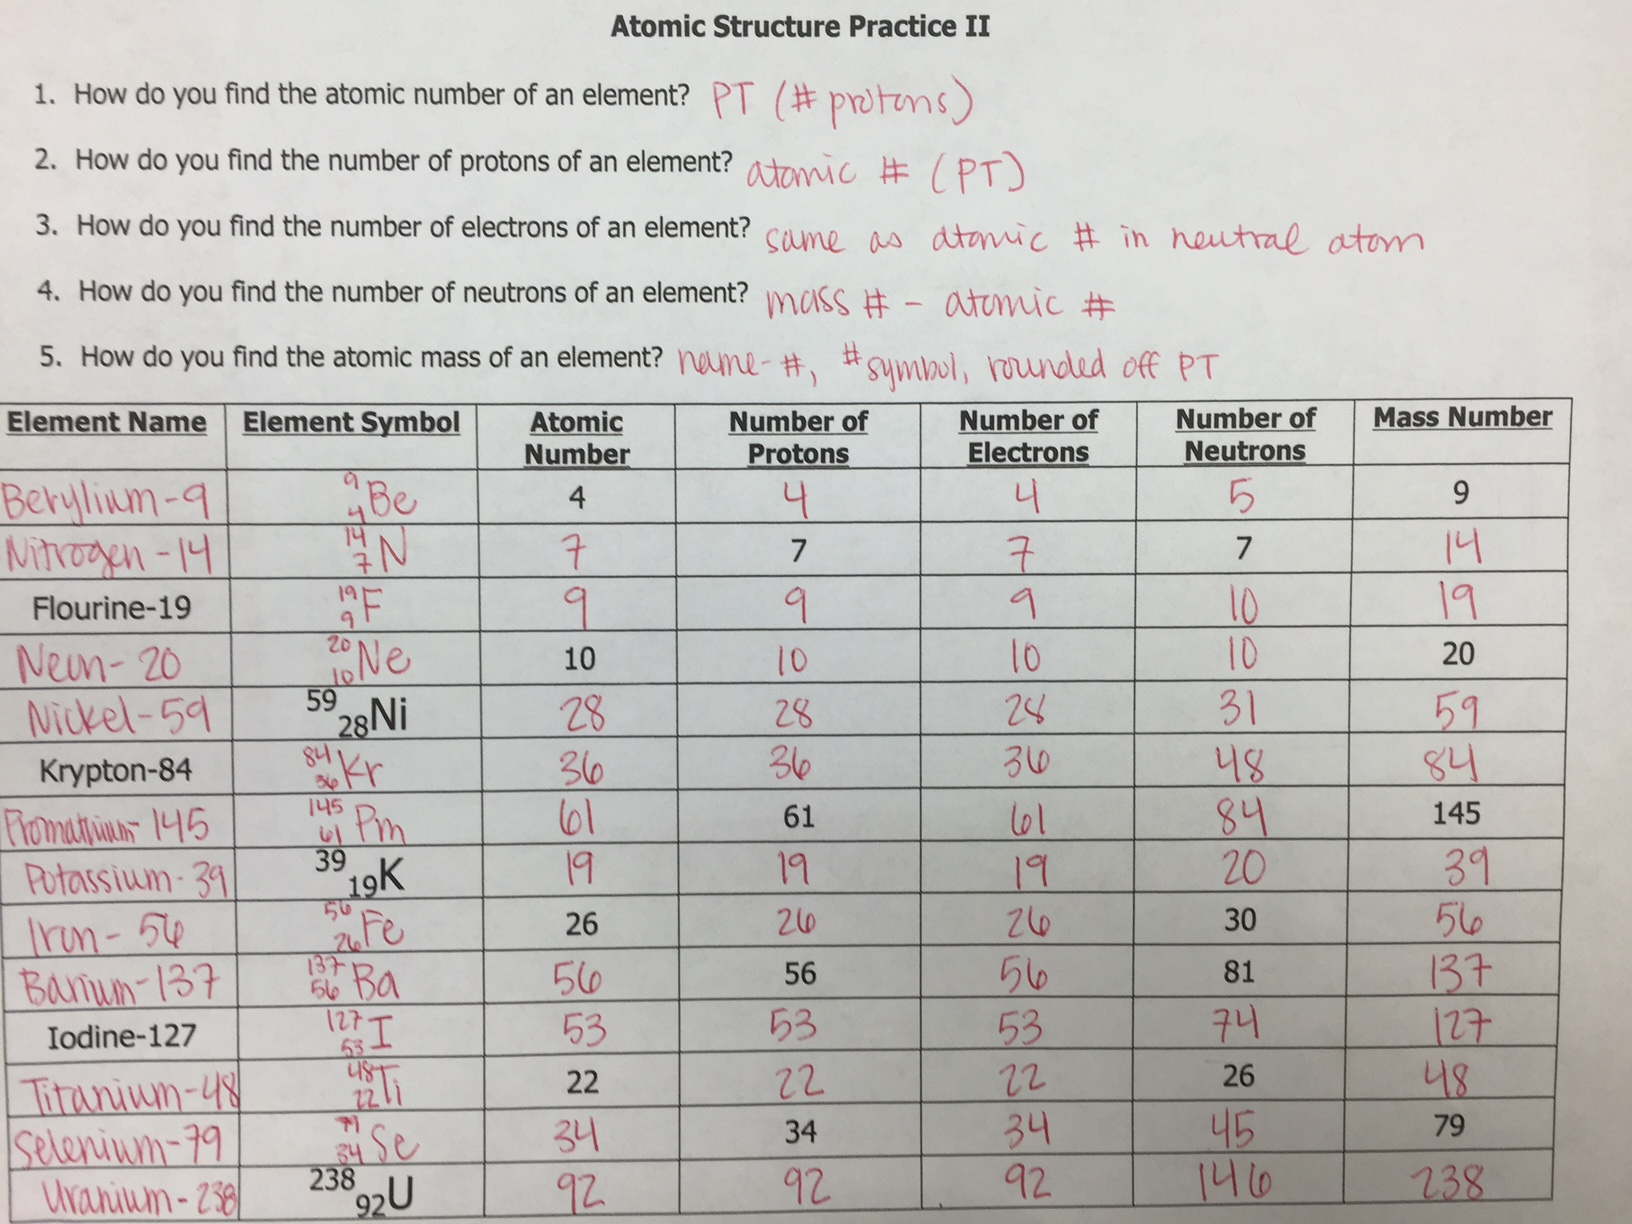 Worksheets Periodic Table Worksheet Answer Unit 2 unit 2 atomic structure ms holls physical science class answer key 3